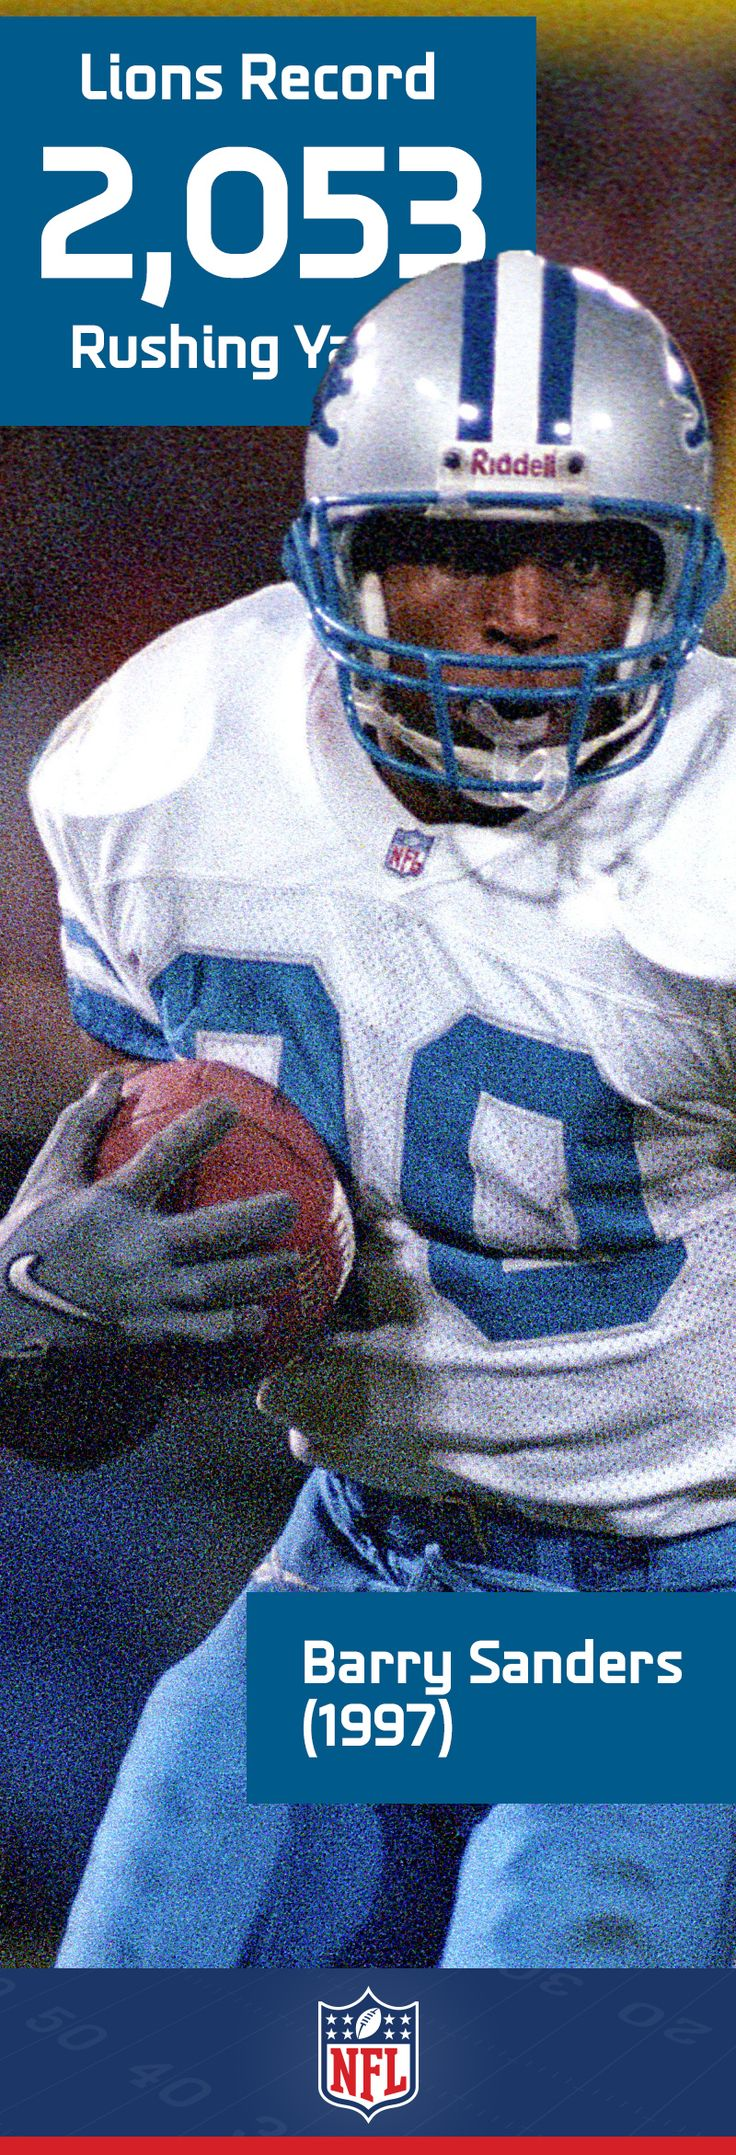 Barry Sanders is a fan favorite and and all-time great, and for good reason. One of the best running backs to ever step on the gridiron, Sanders holds the Lions record with his MVP-worthy 2,053 yards in 1997.